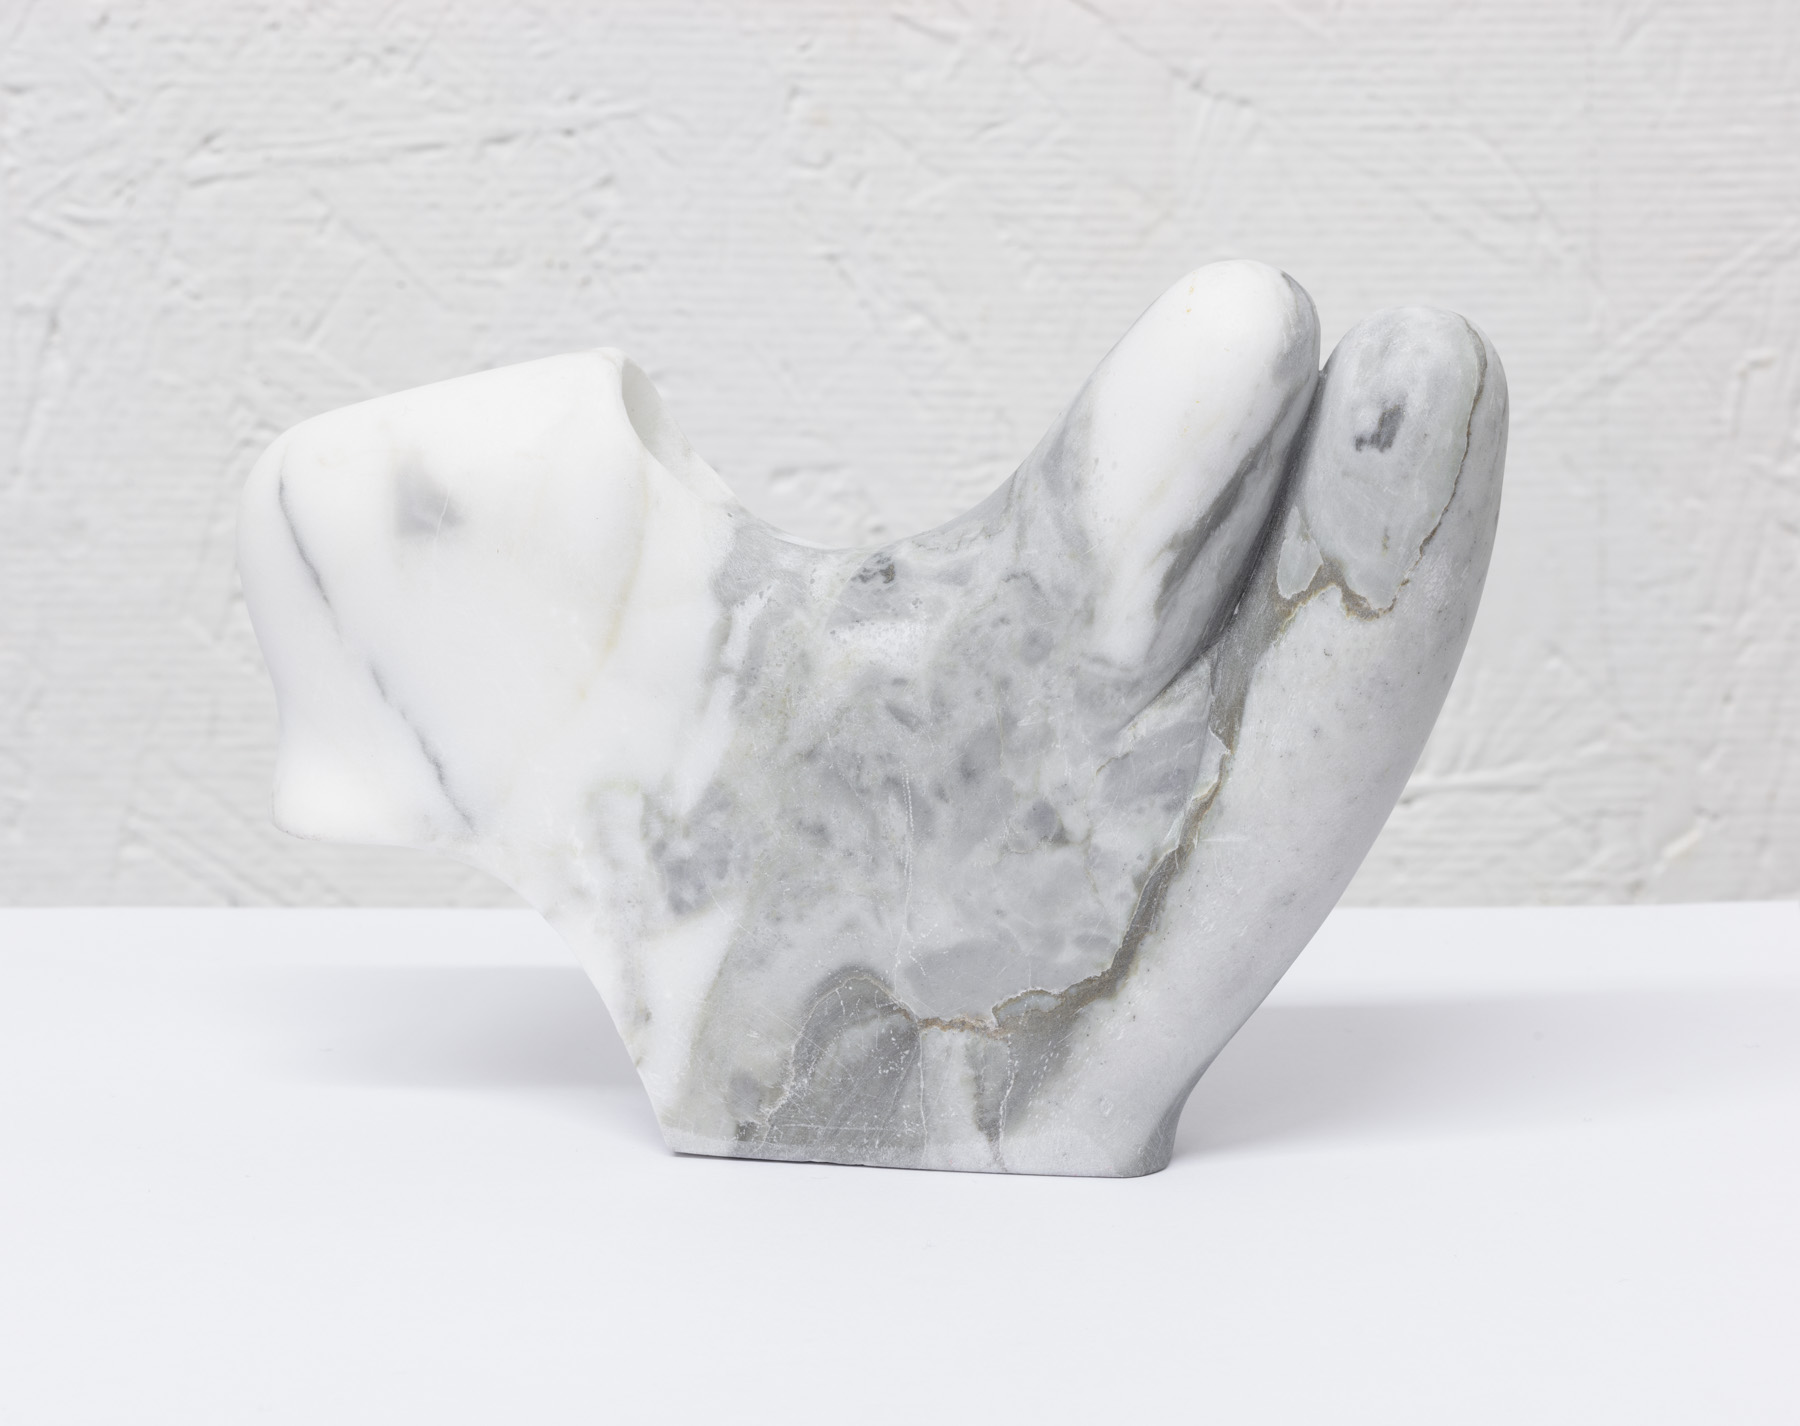 Get back on, 2019 marble 4 ½ x 6 ½ x 1 inches